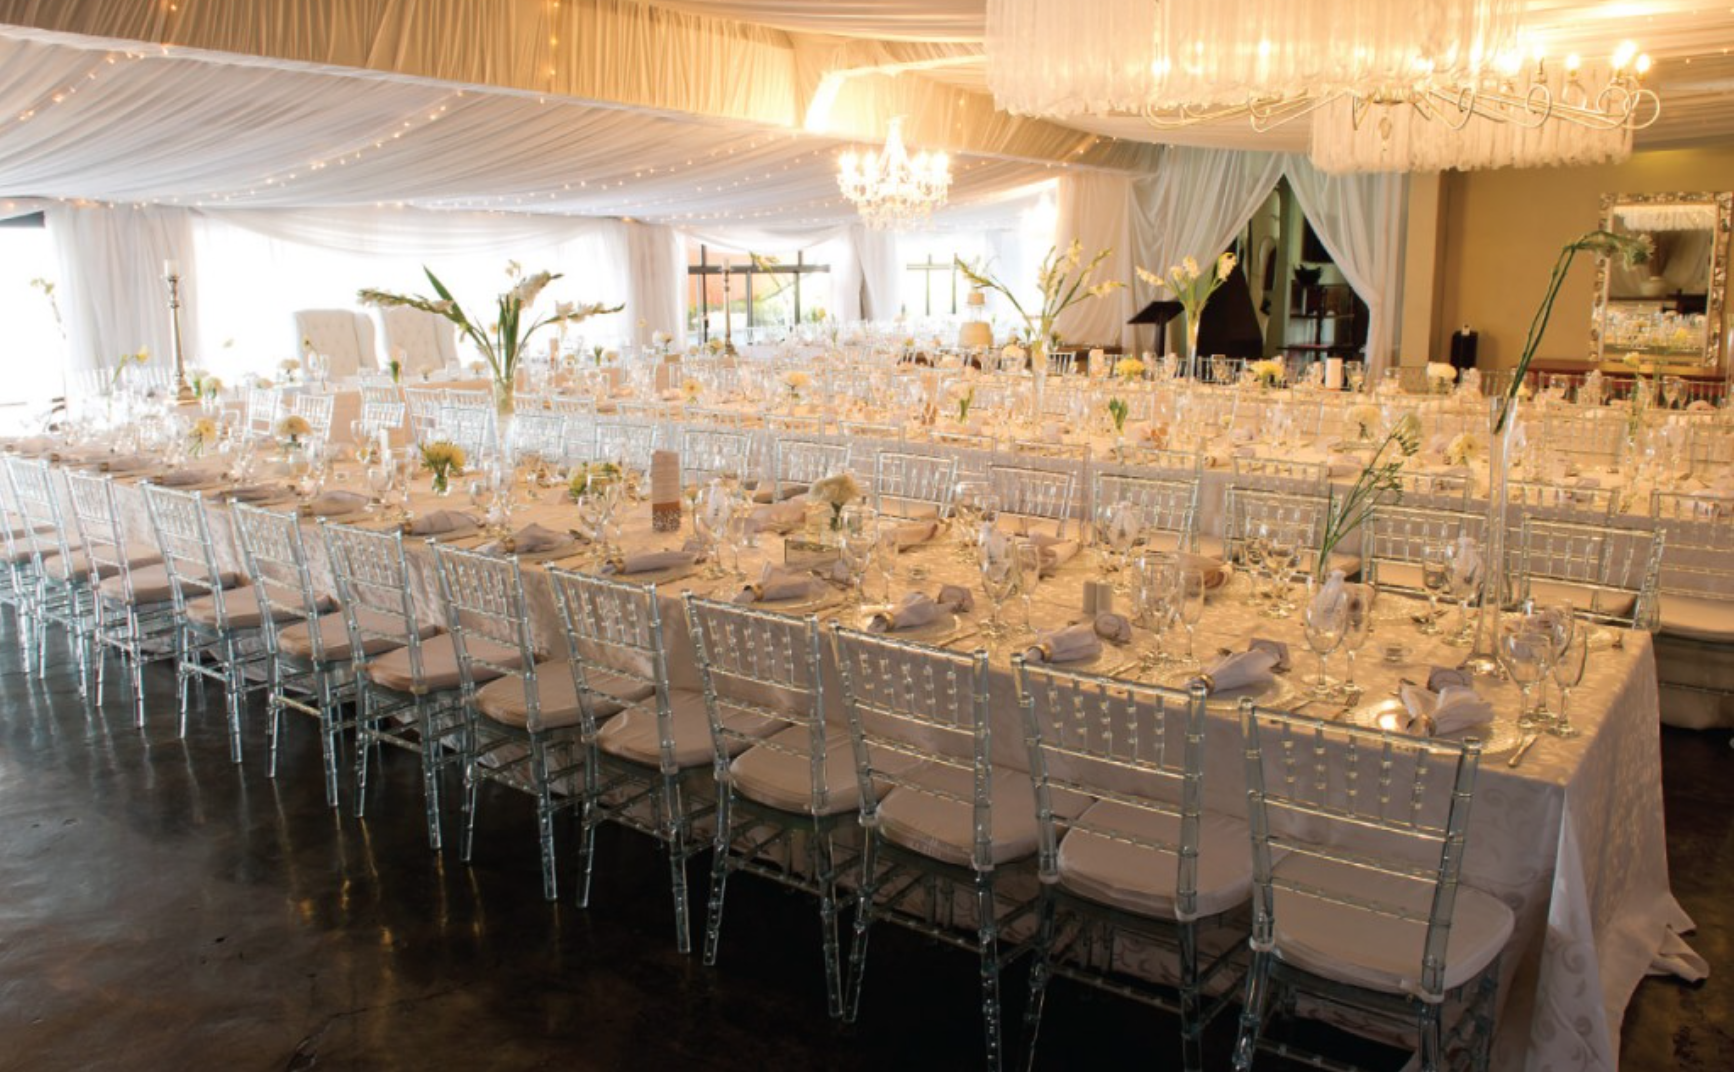 Clear Tiffany Chair & Clear Tiffany Chair | Chaise à Louer | Pinterest | Tiffany and Weddings